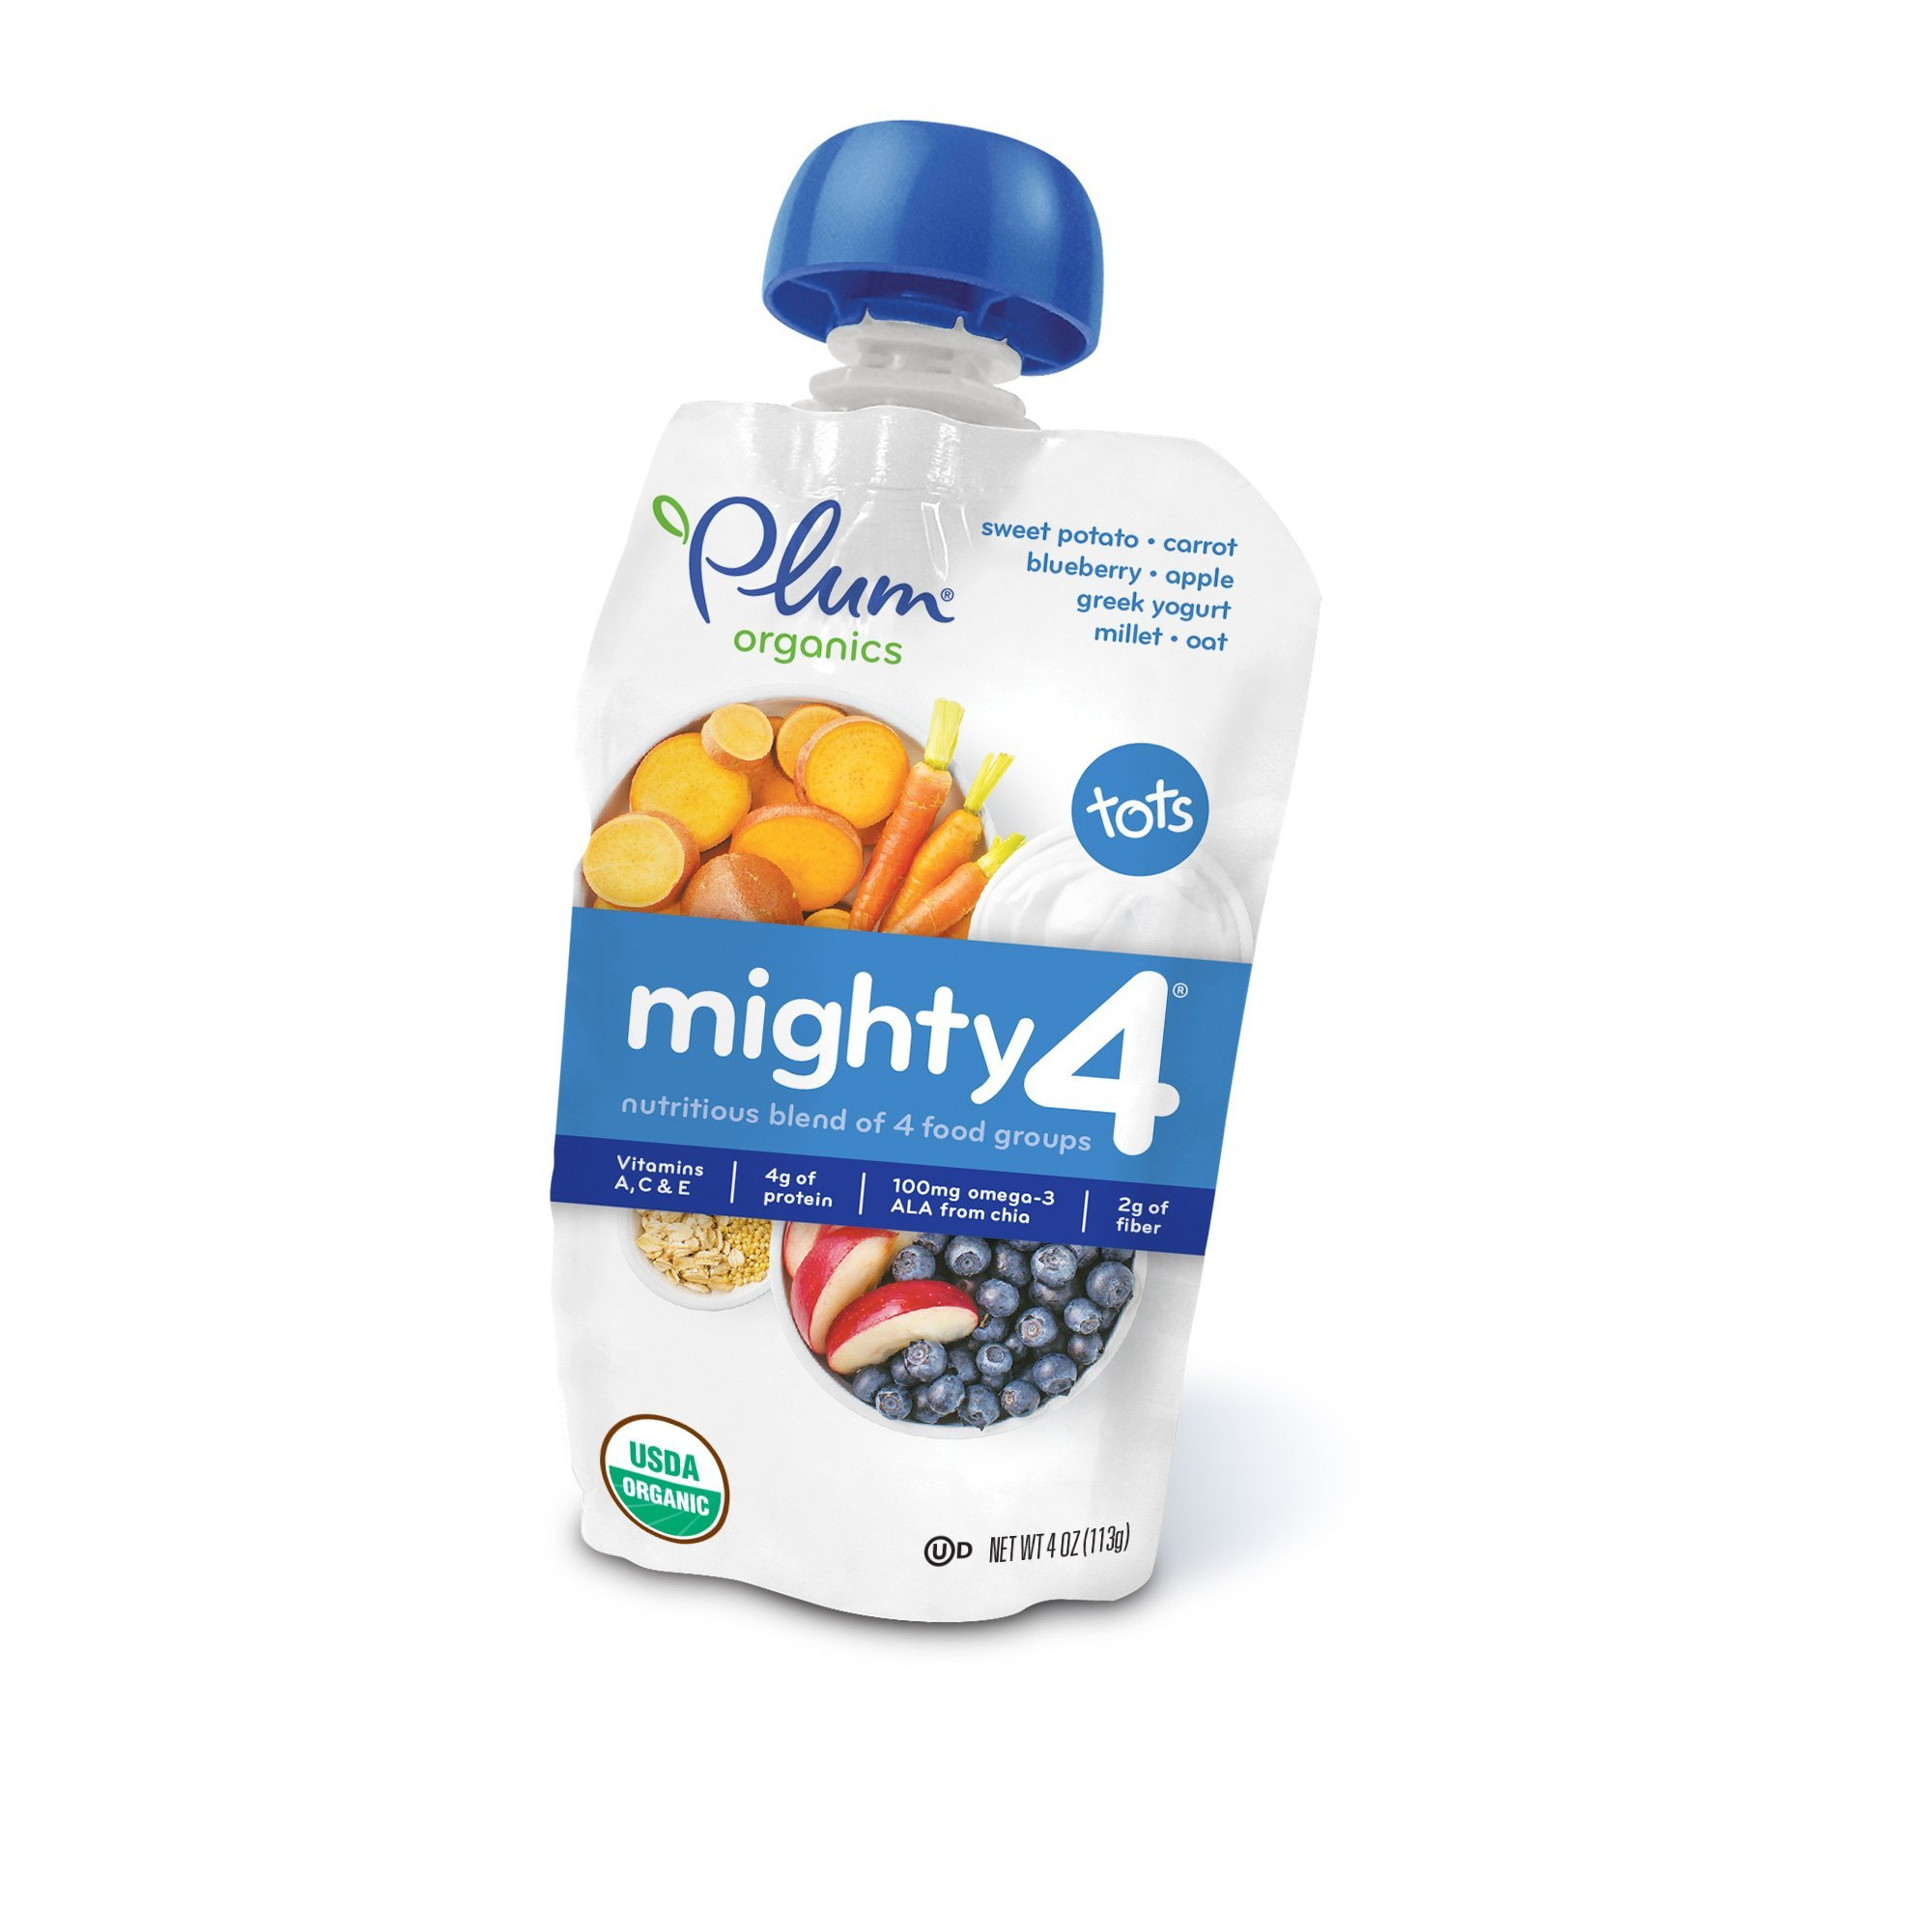 Plum Organics Mighty 4, Organic Toddler Food, Sweet Potato, Carrot, Blueberry, Apple, Greek Yogurt, Millet & Oat, 4 ounce pouch (Pack of 12)